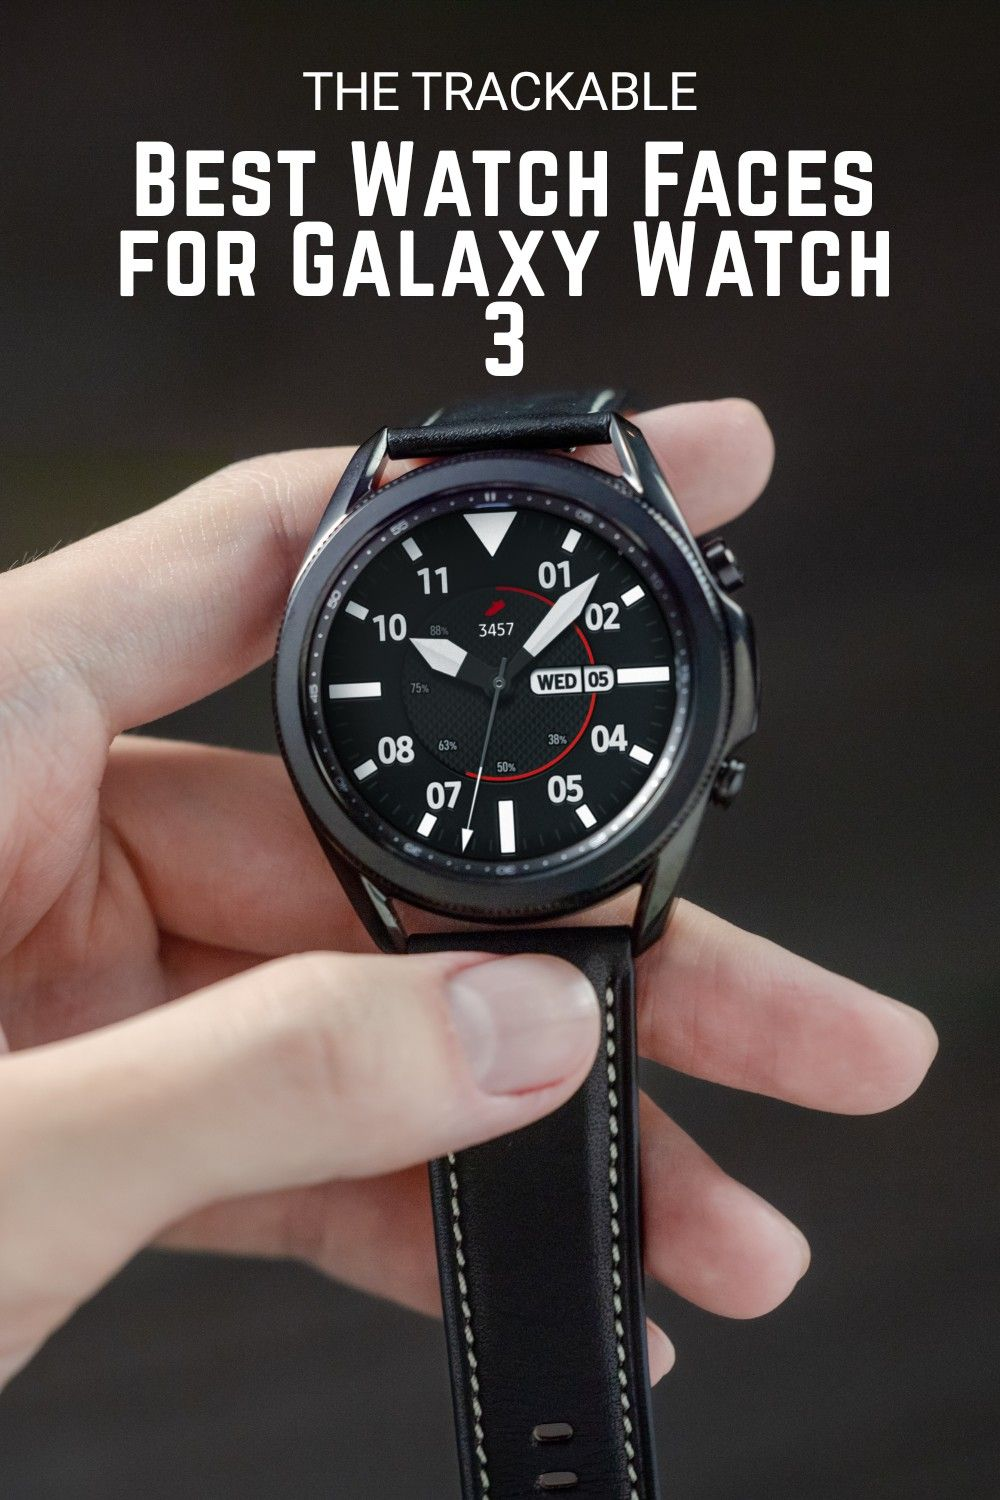 Best Watch Faces For Galaxy Warch 3 In 2020 Watch Faces Cool Watches Samsung Watches